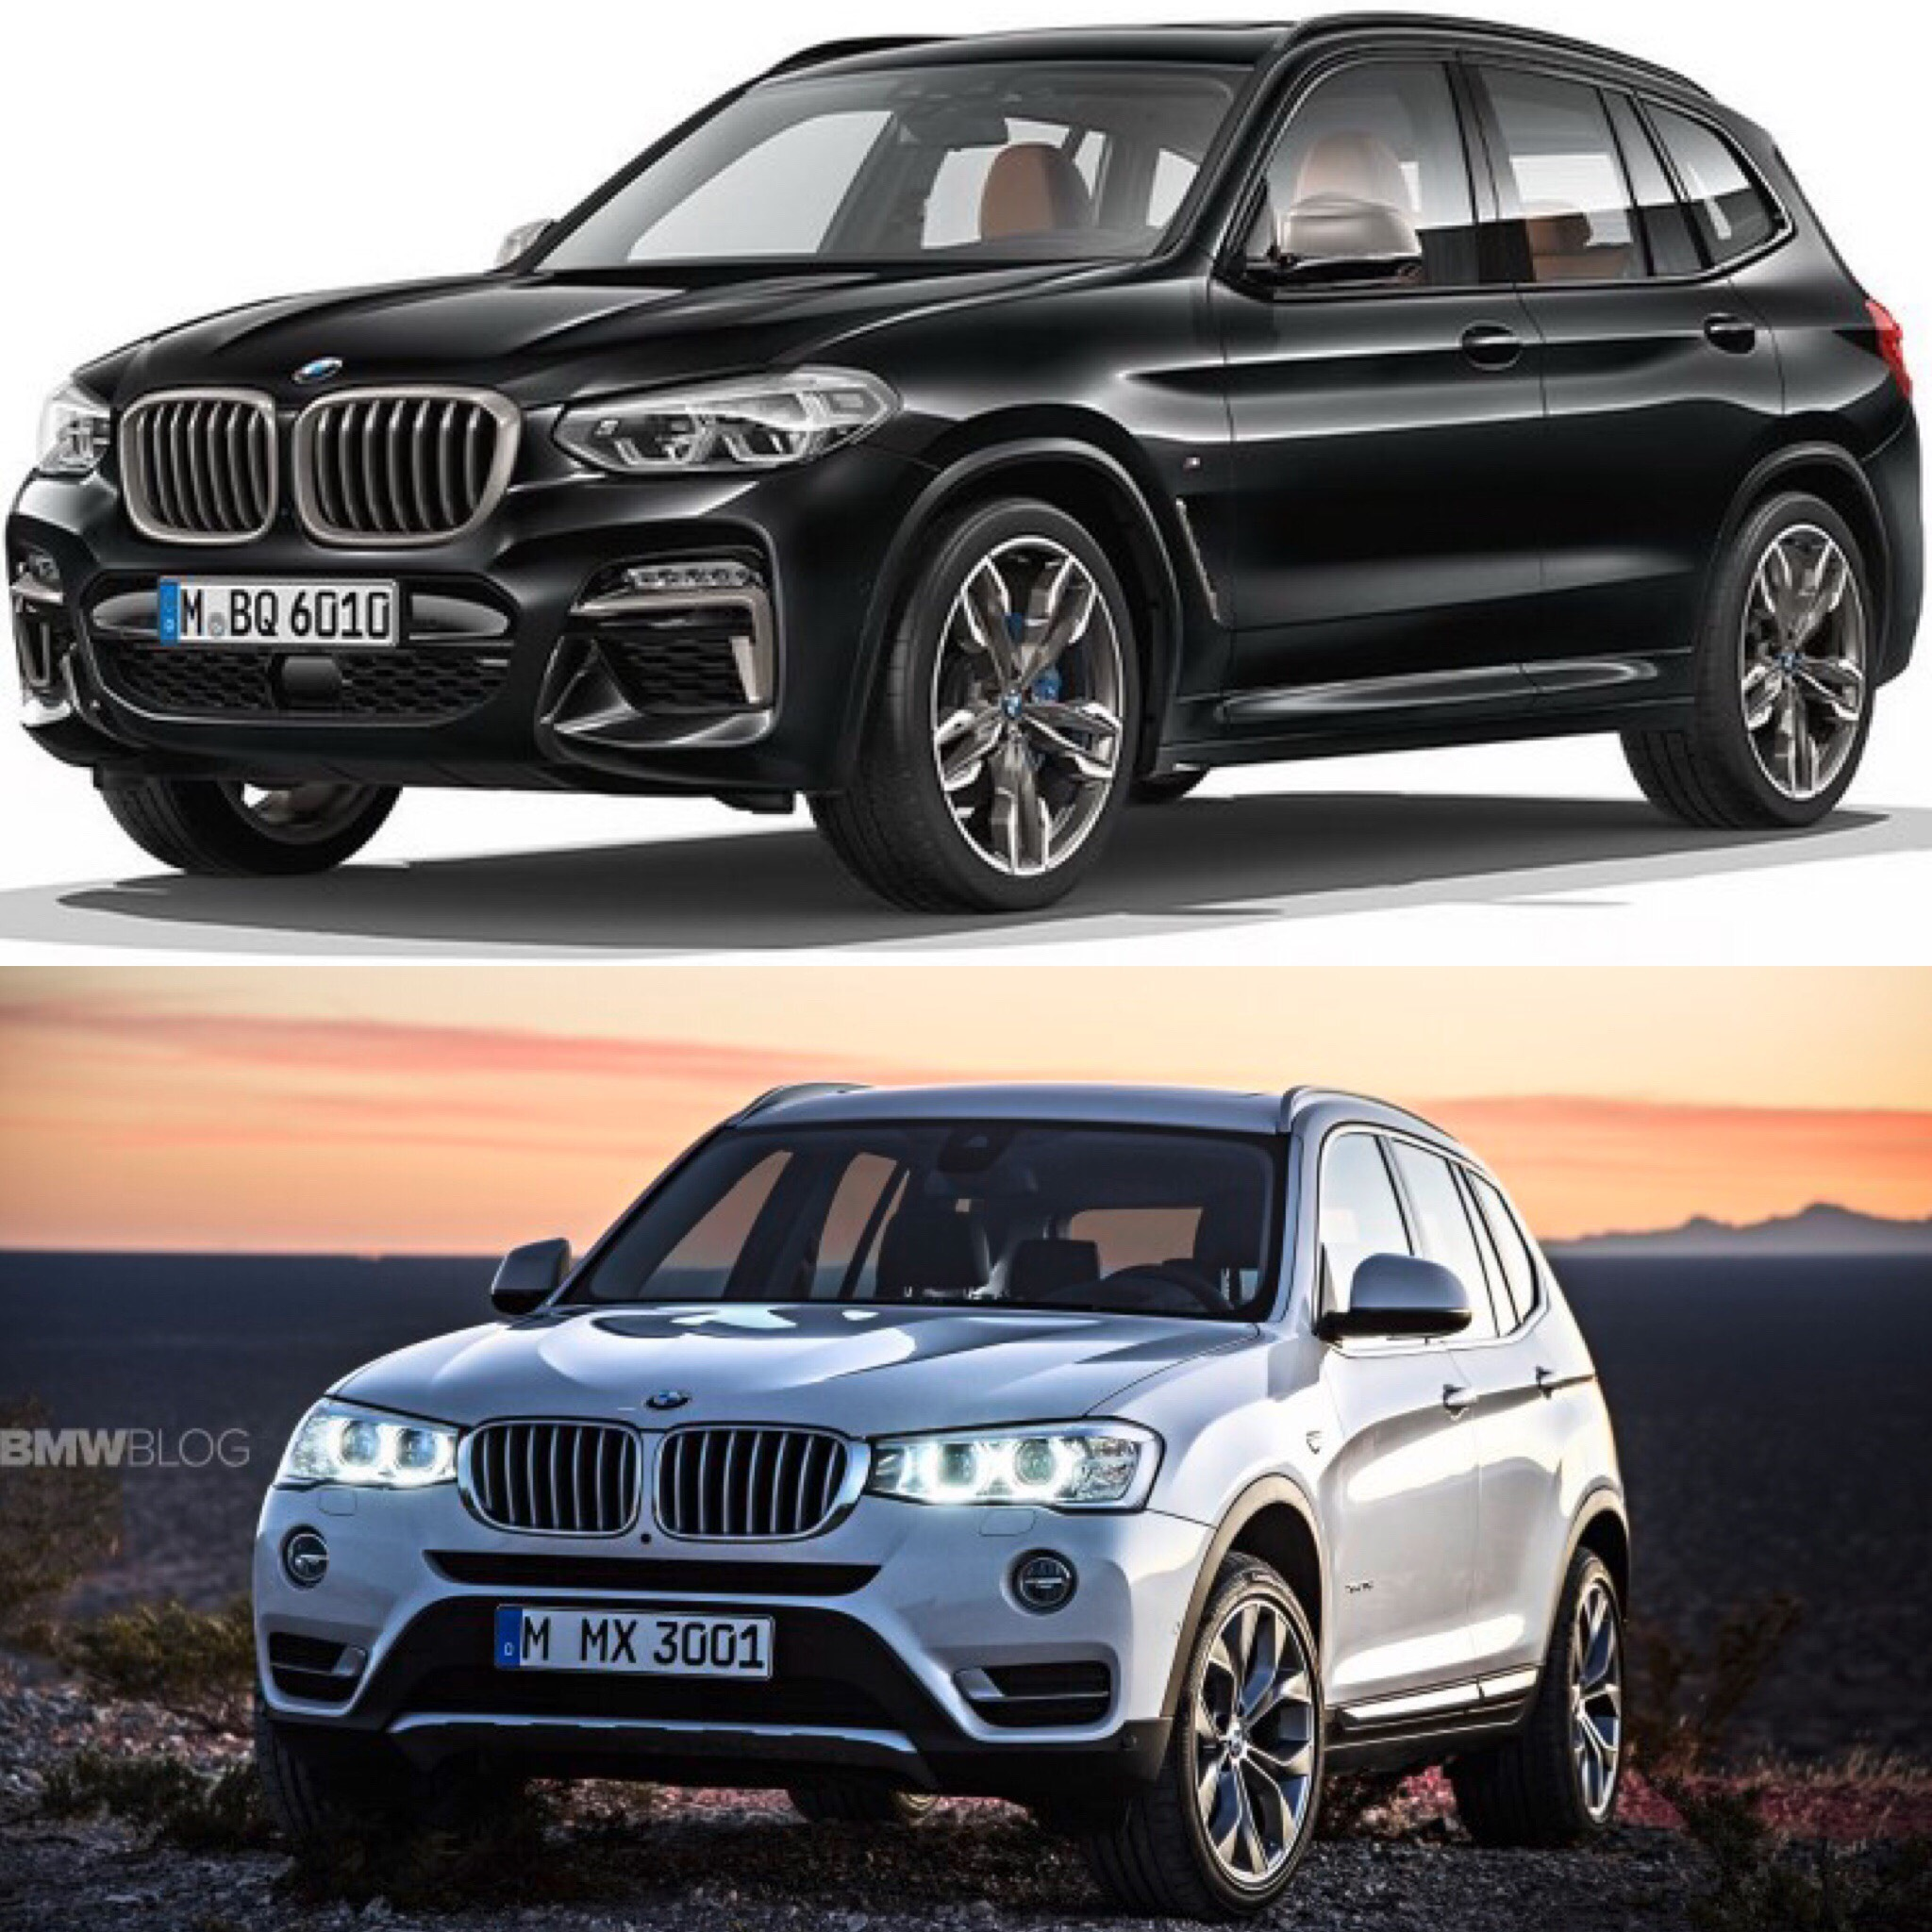 photo comparison g01 bmw x3 vs f25 bmw x3. Black Bedroom Furniture Sets. Home Design Ideas